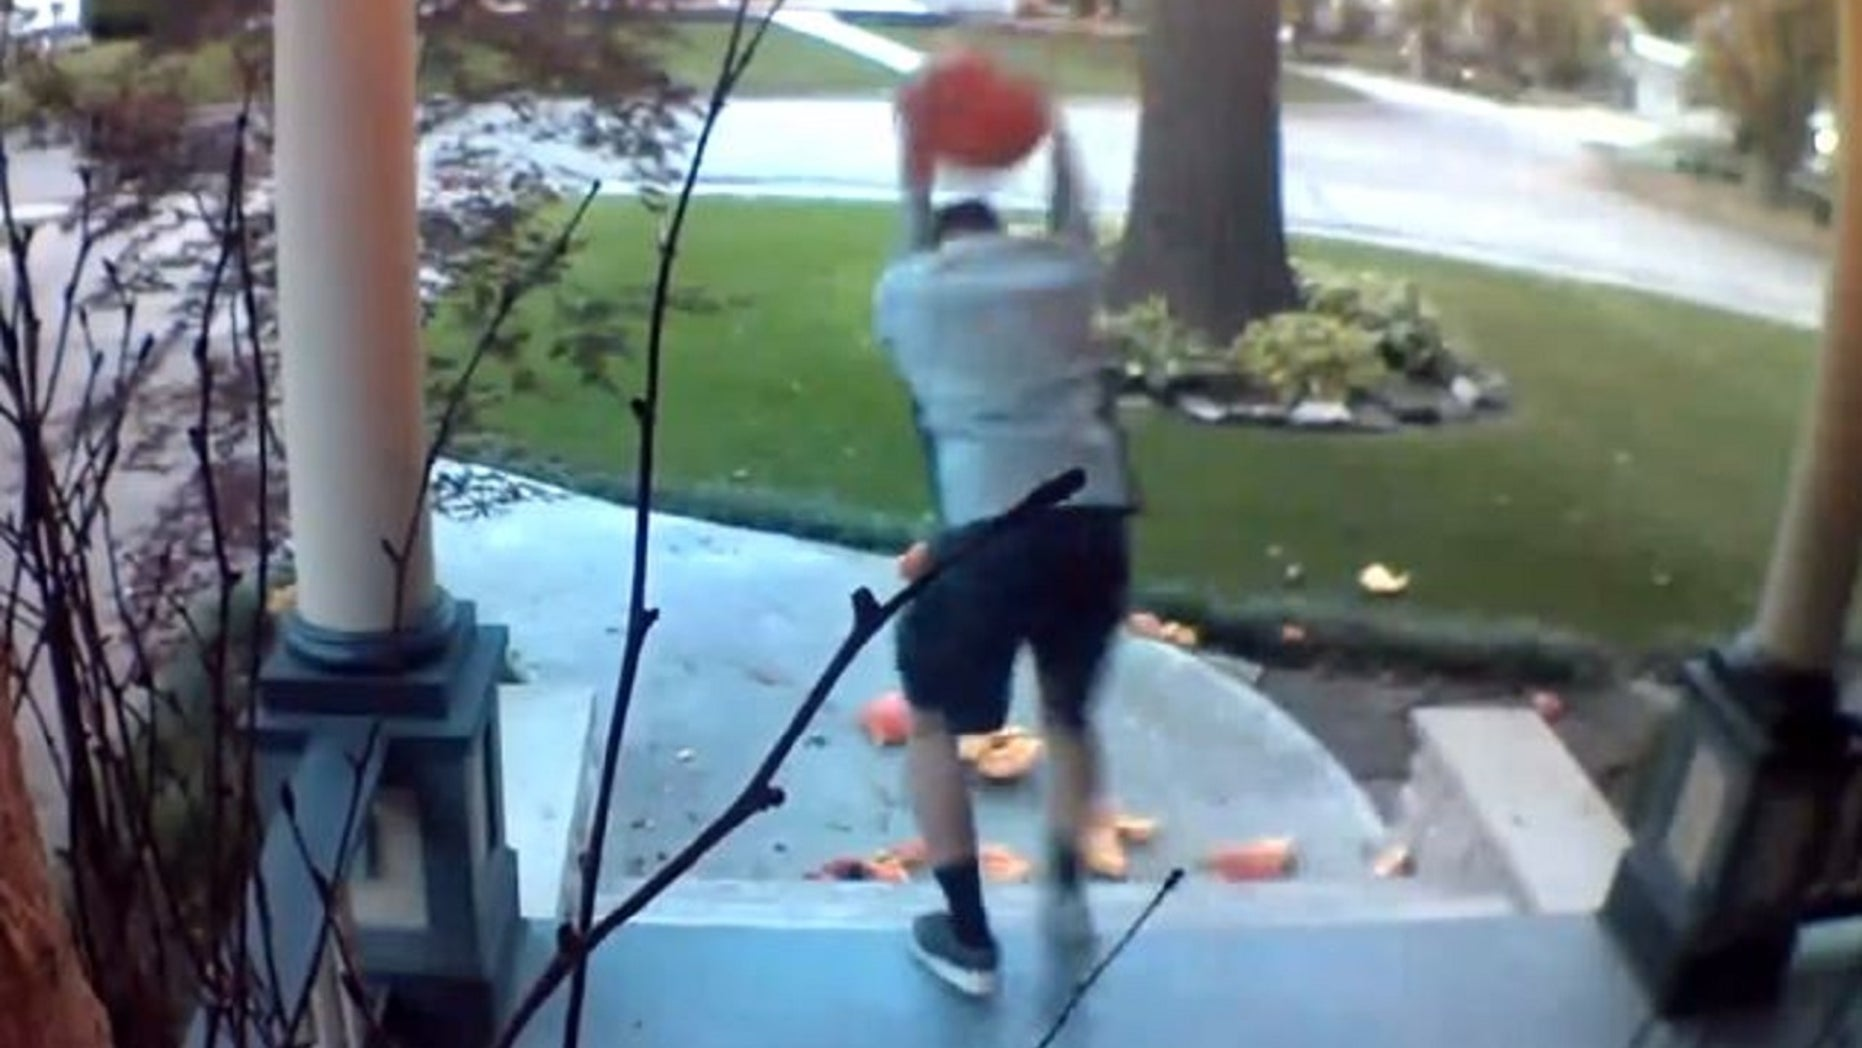 A Kansas family found the person responsible for smashing their two sons' pumpkins in broad daylight last week.